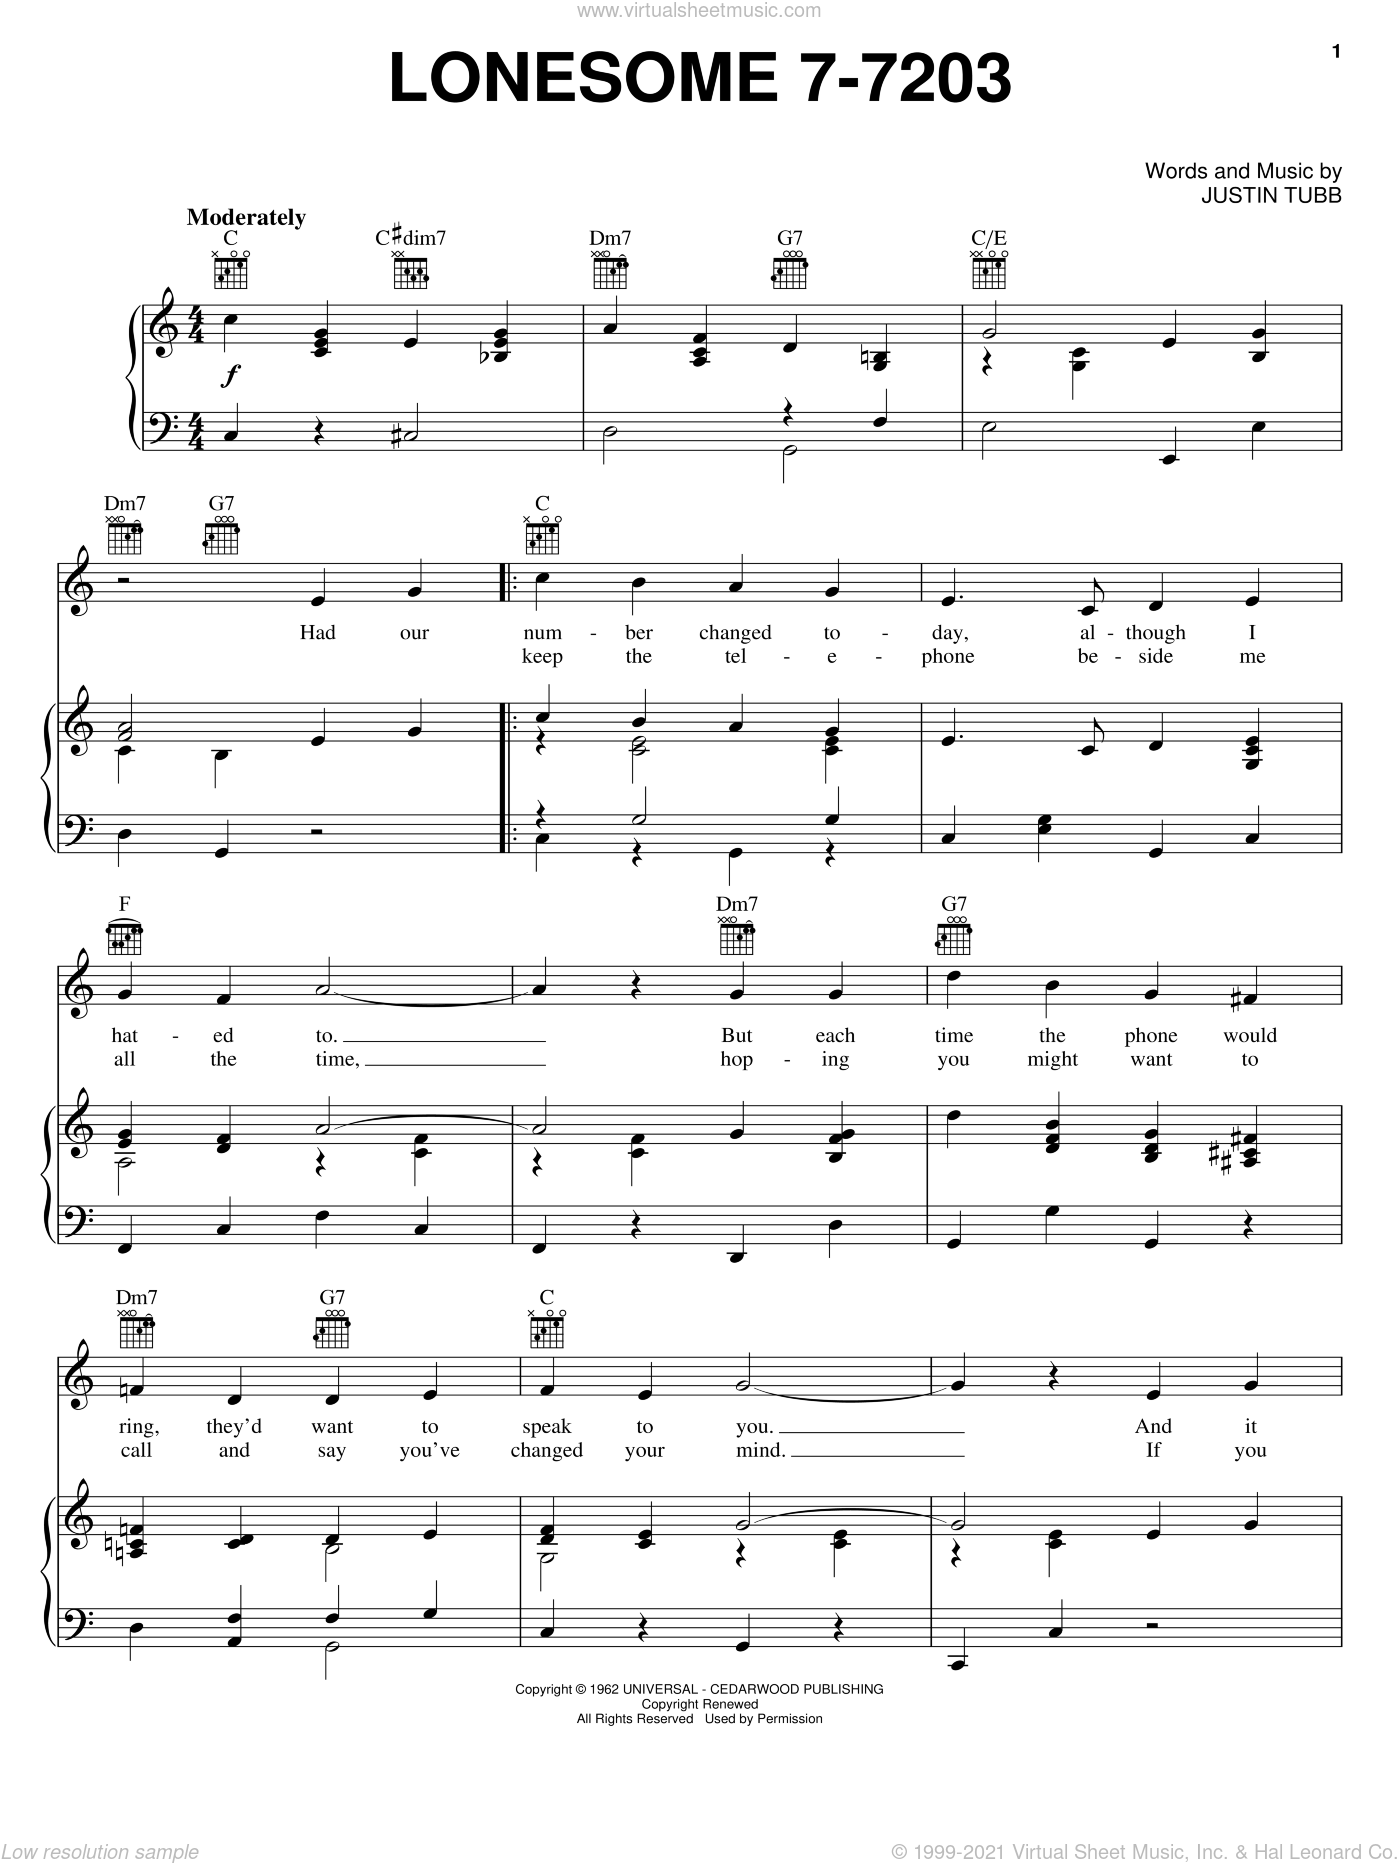 Lonesome 7-7203 sheet music for voice, piano or guitar by Justin Tubb